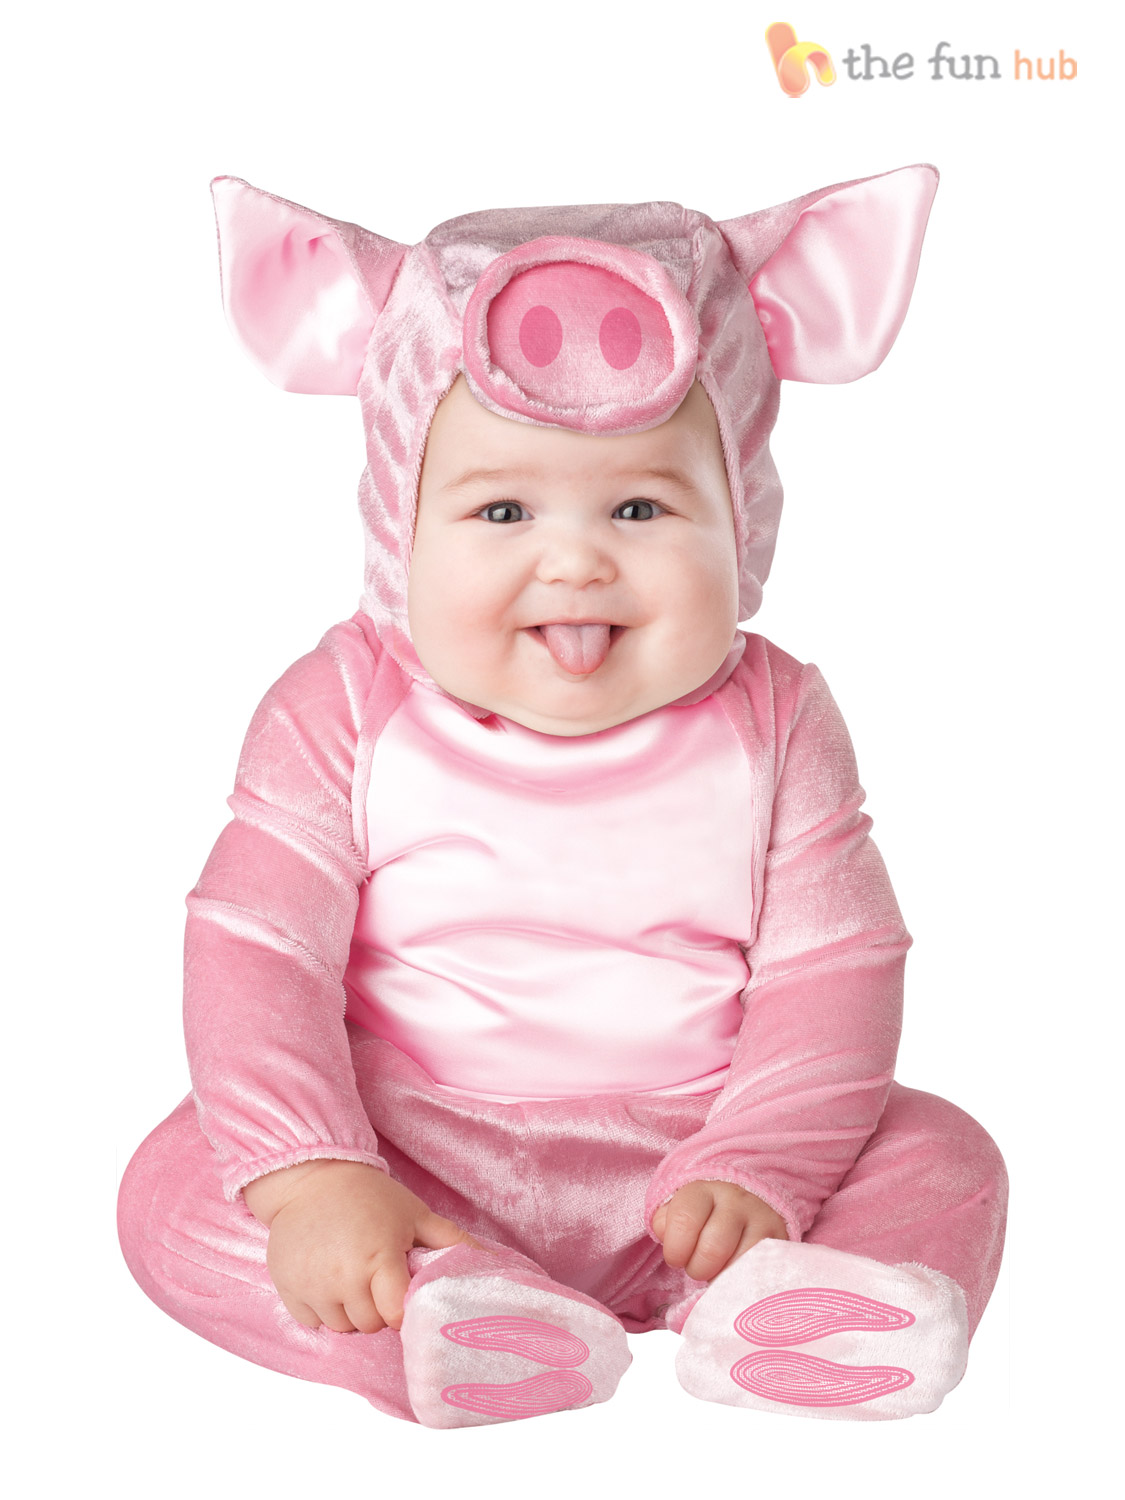 boys girls baby fancy dress up animal costume halloween infant 6 12 18 24 months ebay. Black Bedroom Furniture Sets. Home Design Ideas